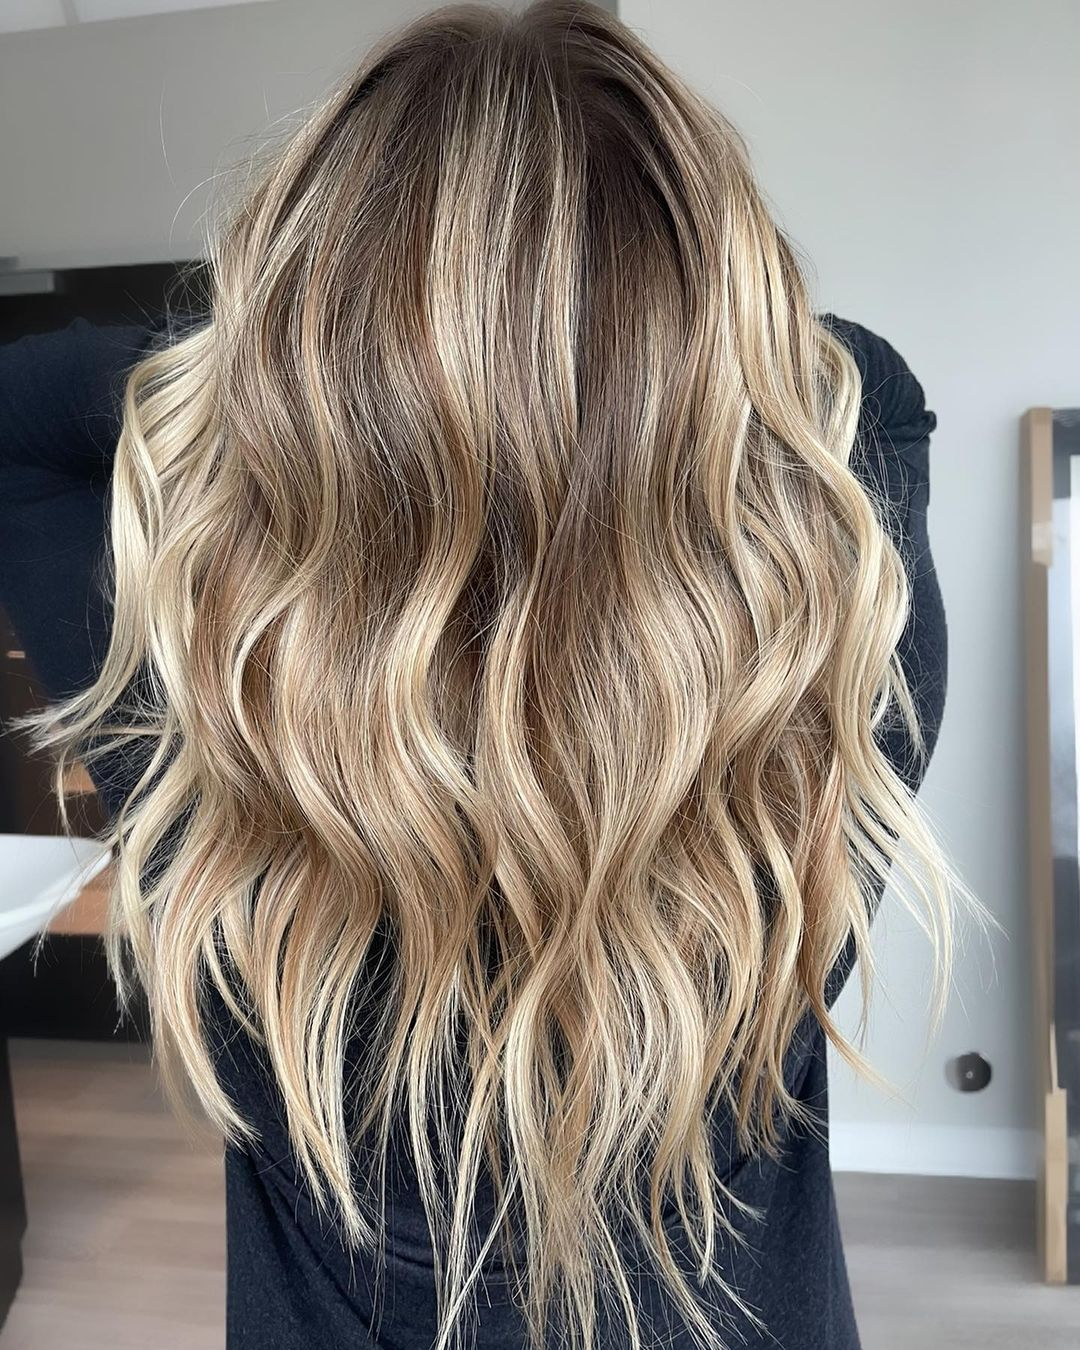 Long Wavy Dirty Blonde Hairstyle